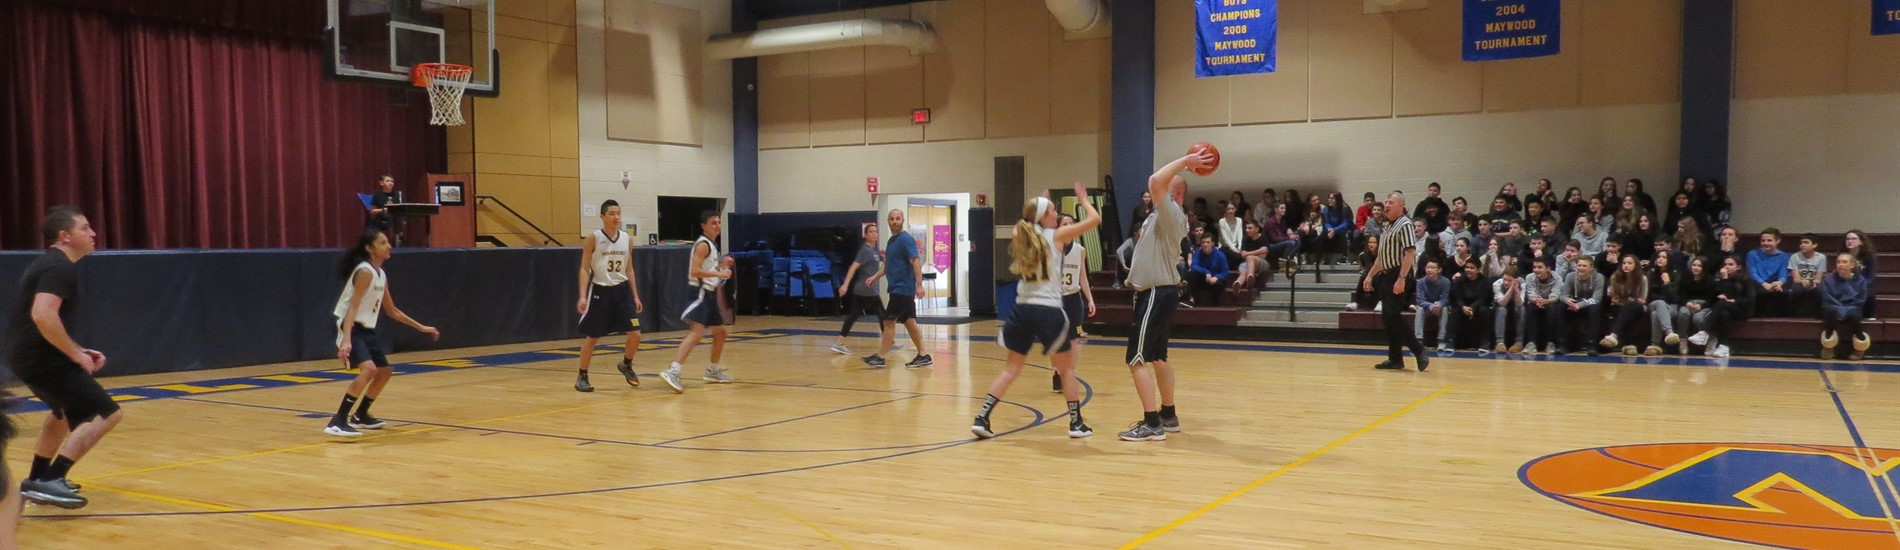 Student - Faculty basketball game